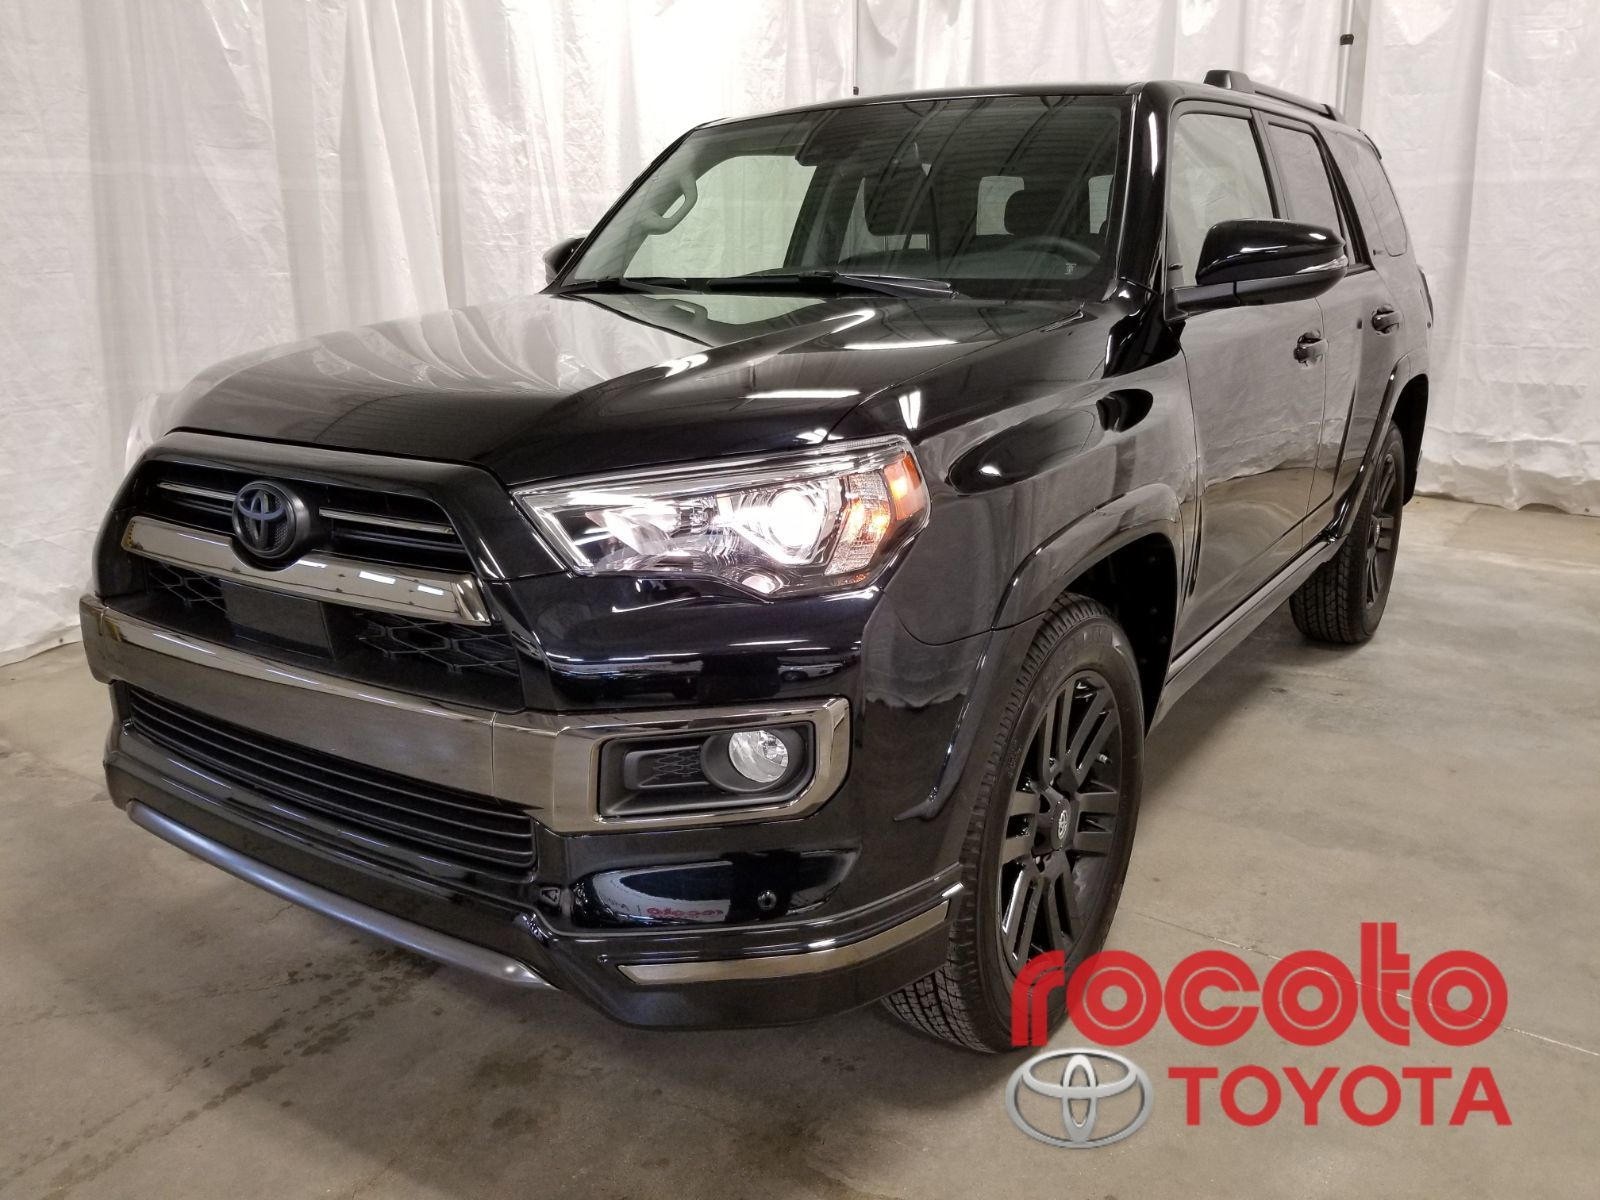 Rocoto Toyota New 2020 4runner Limited Nightshade 7 Places 00588 For Sale In Chicoutimi